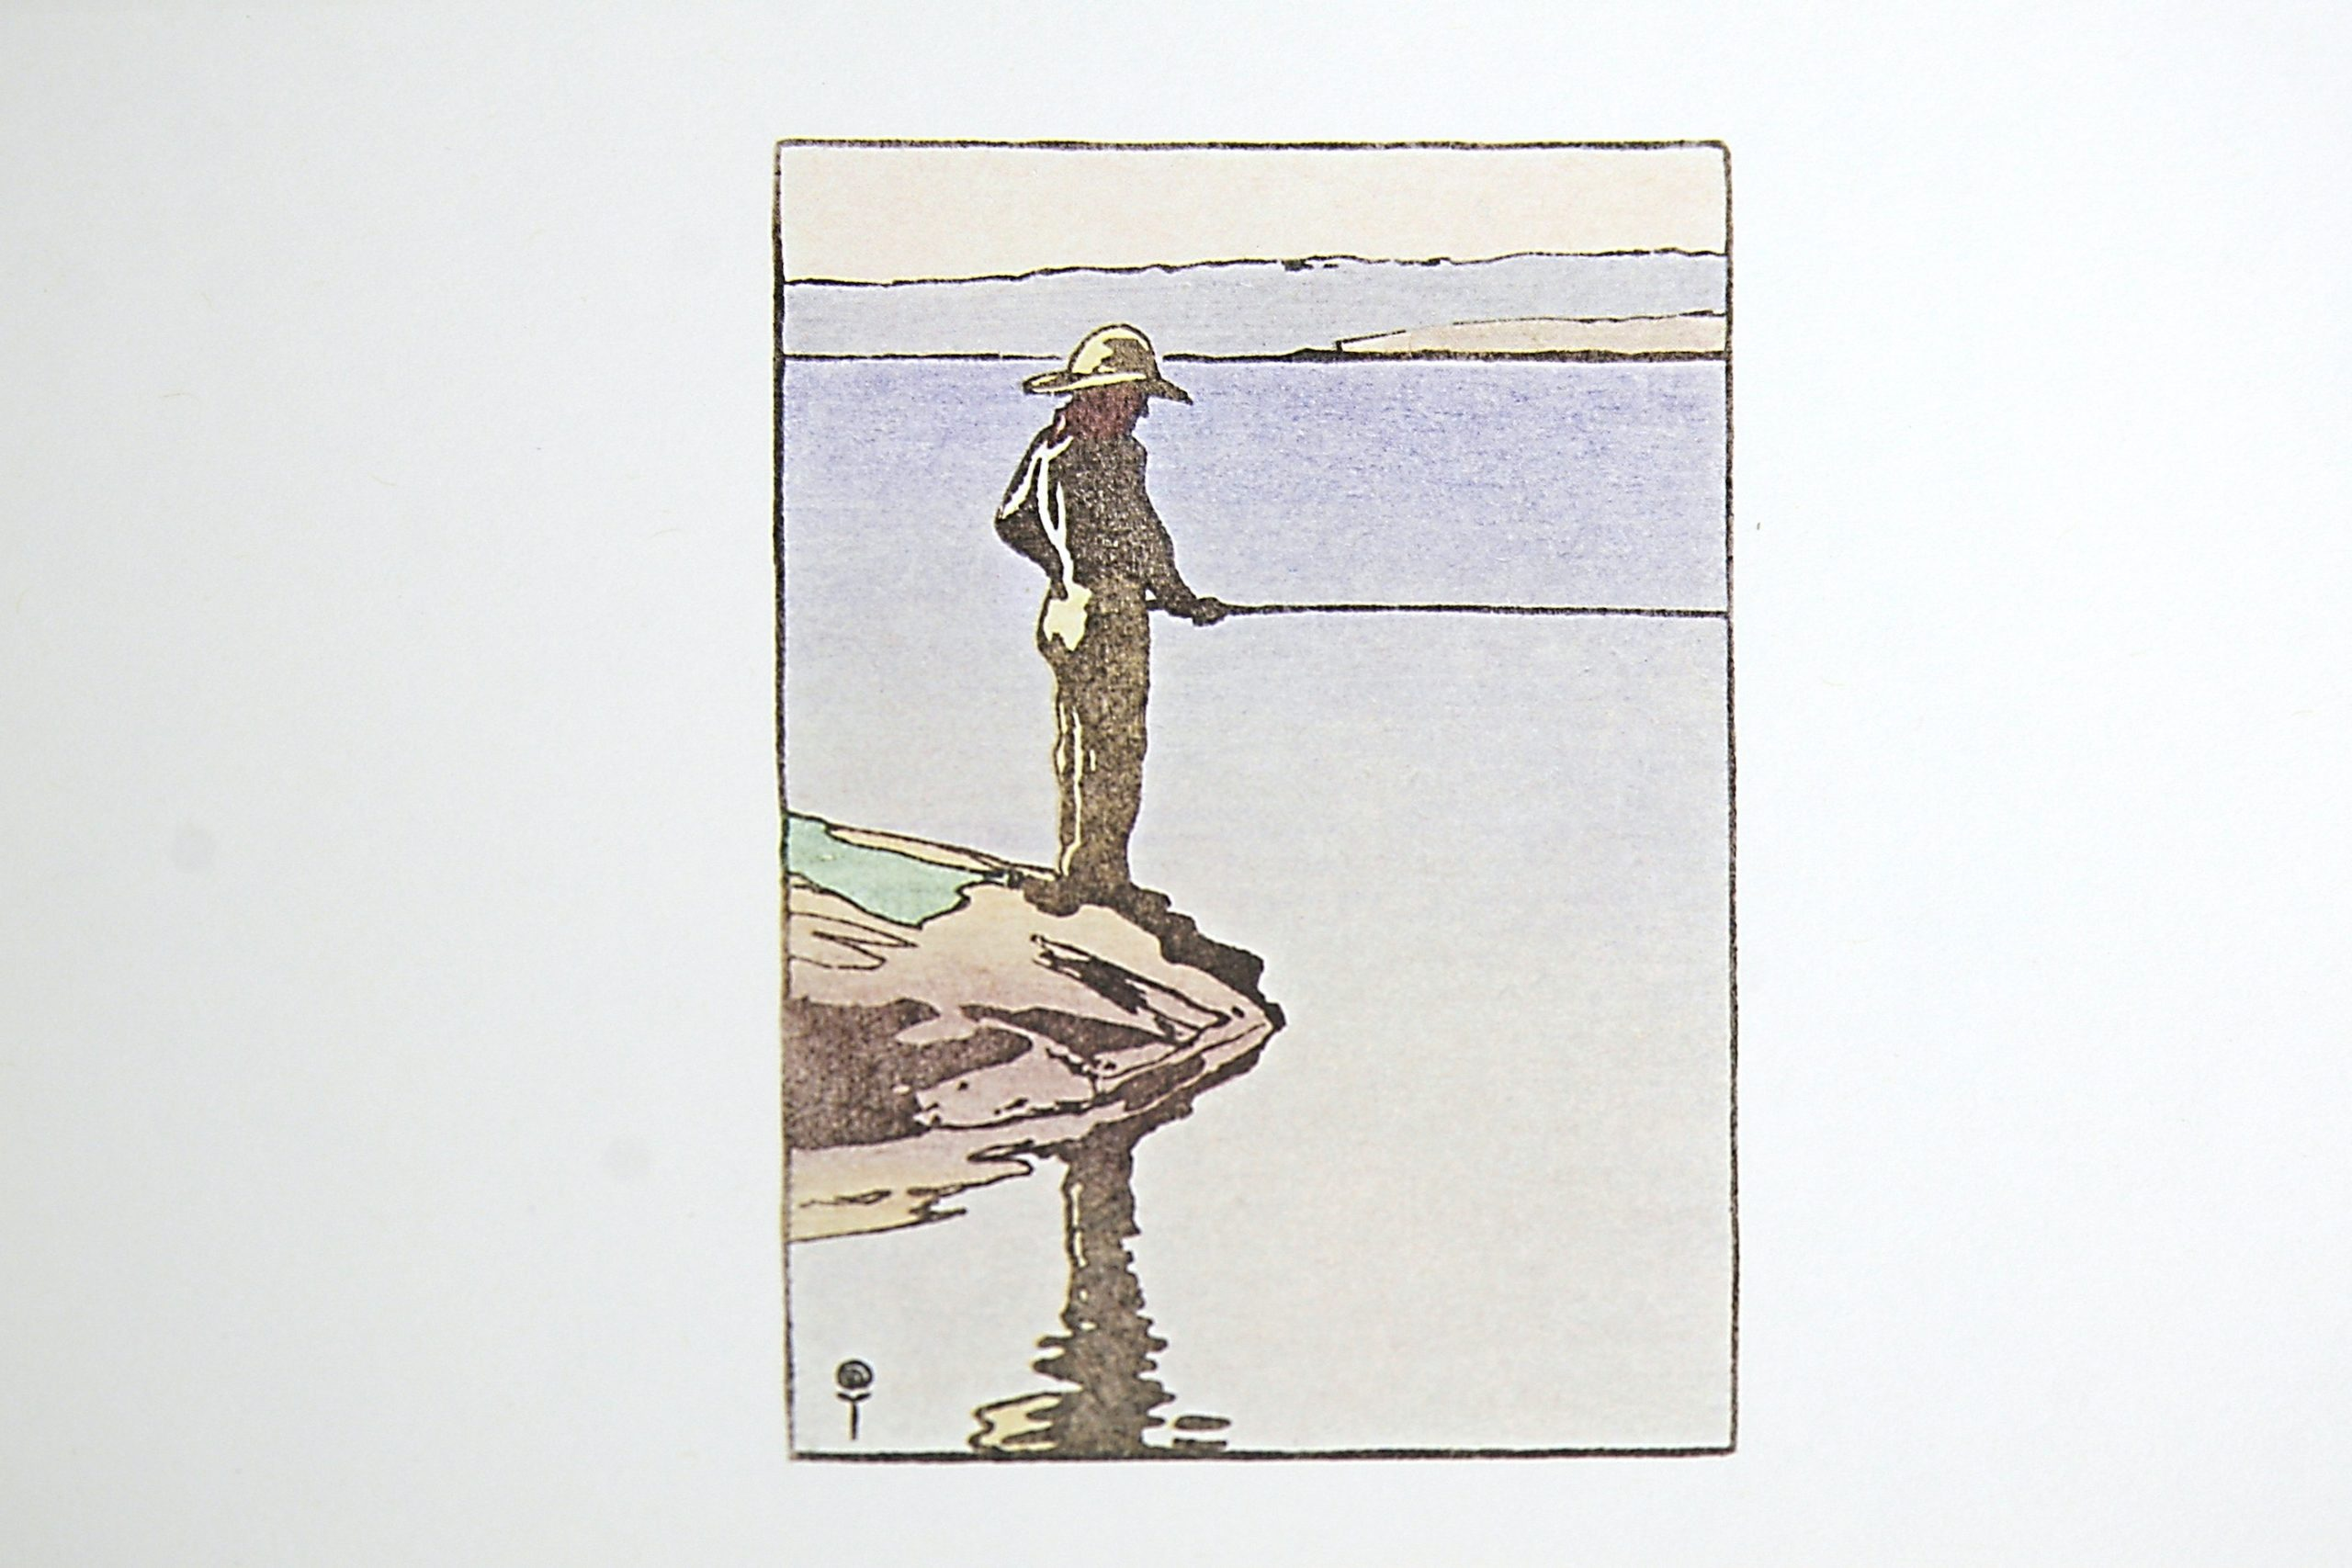 The Angler by WJ Phillips